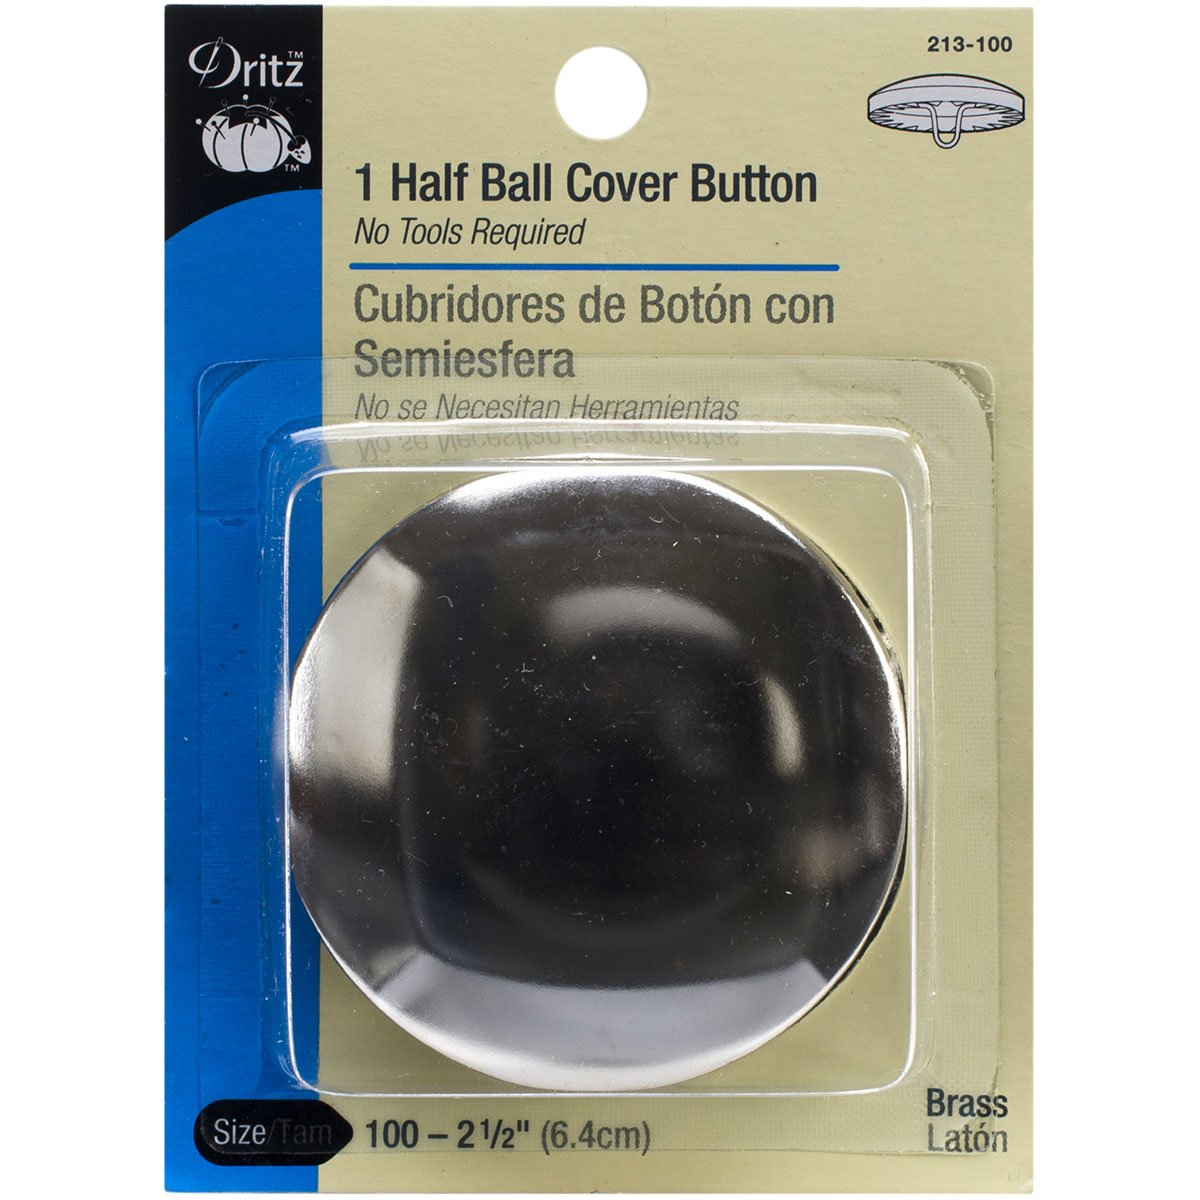 Dritz Cover Buttons, Half Ball - Size 100 (2-1/2) - 1 Ct. 213-100